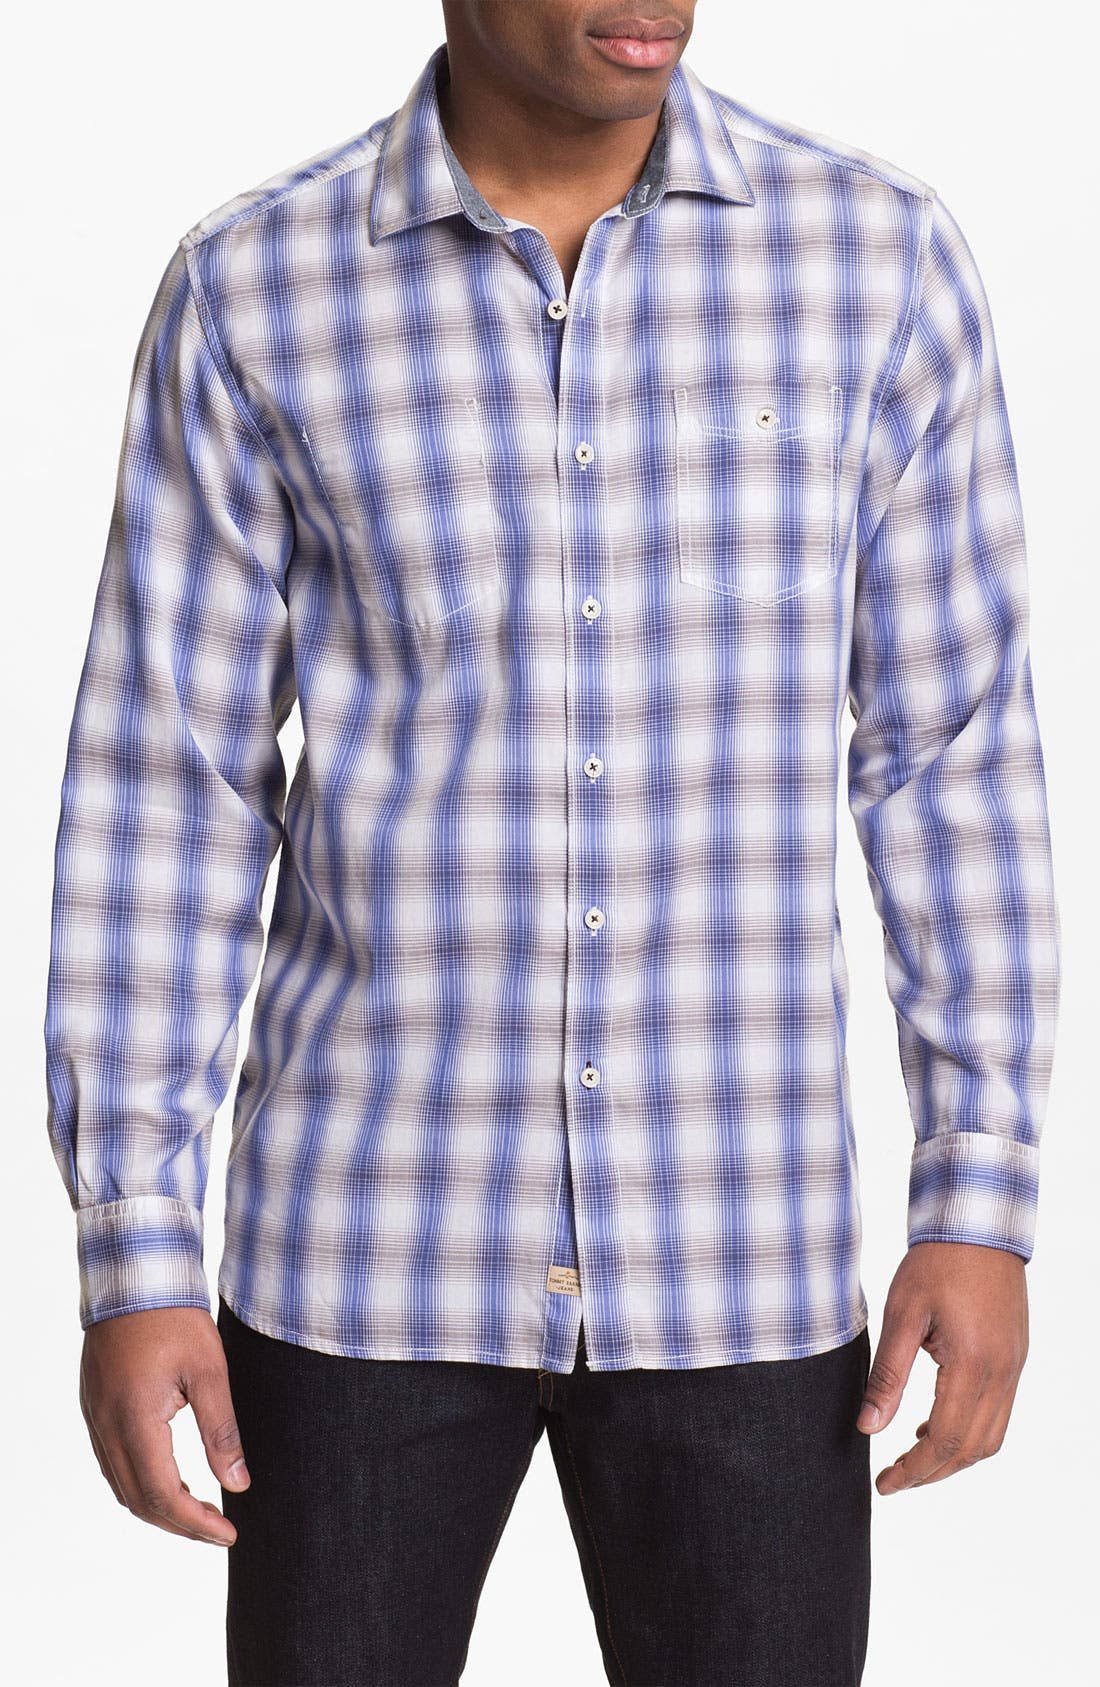 Alternate Image 1 Selected - Tommy Bahama 'San Pancho Plaid' Island Modern Fit Sport Shirt